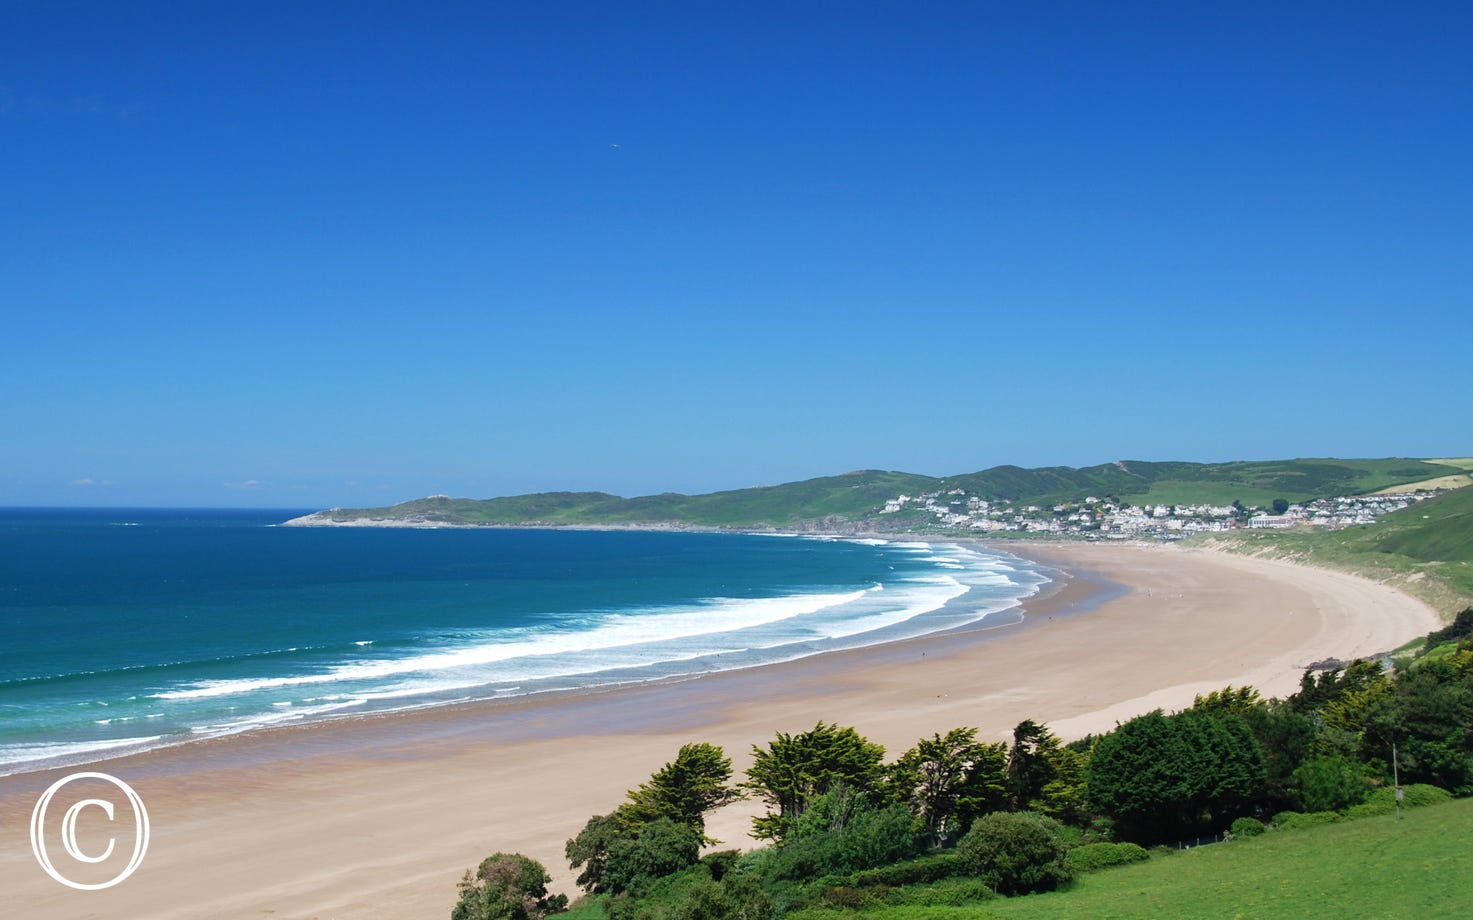 Putsborough beach is just a short drive away